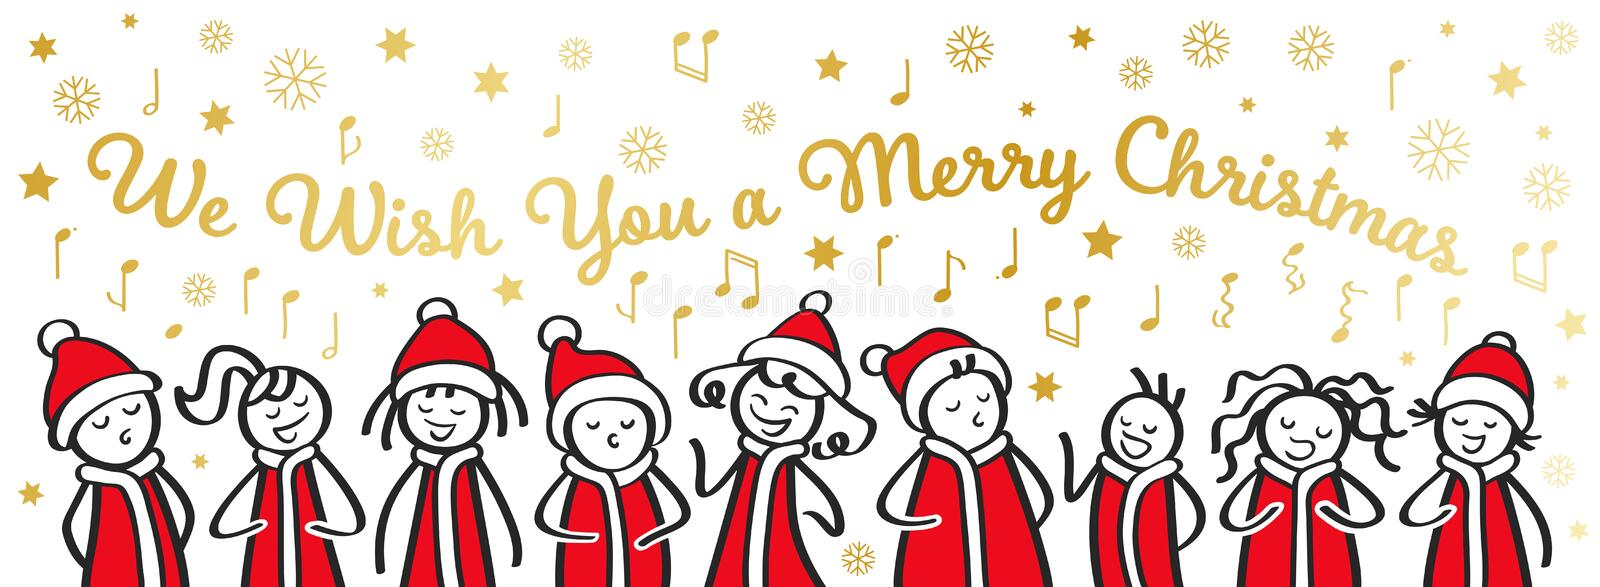 Christmas Carol singers, choir, funny men and women singing We wish you a merry Christmas, stick figures in santa costumes, banner vector illustration